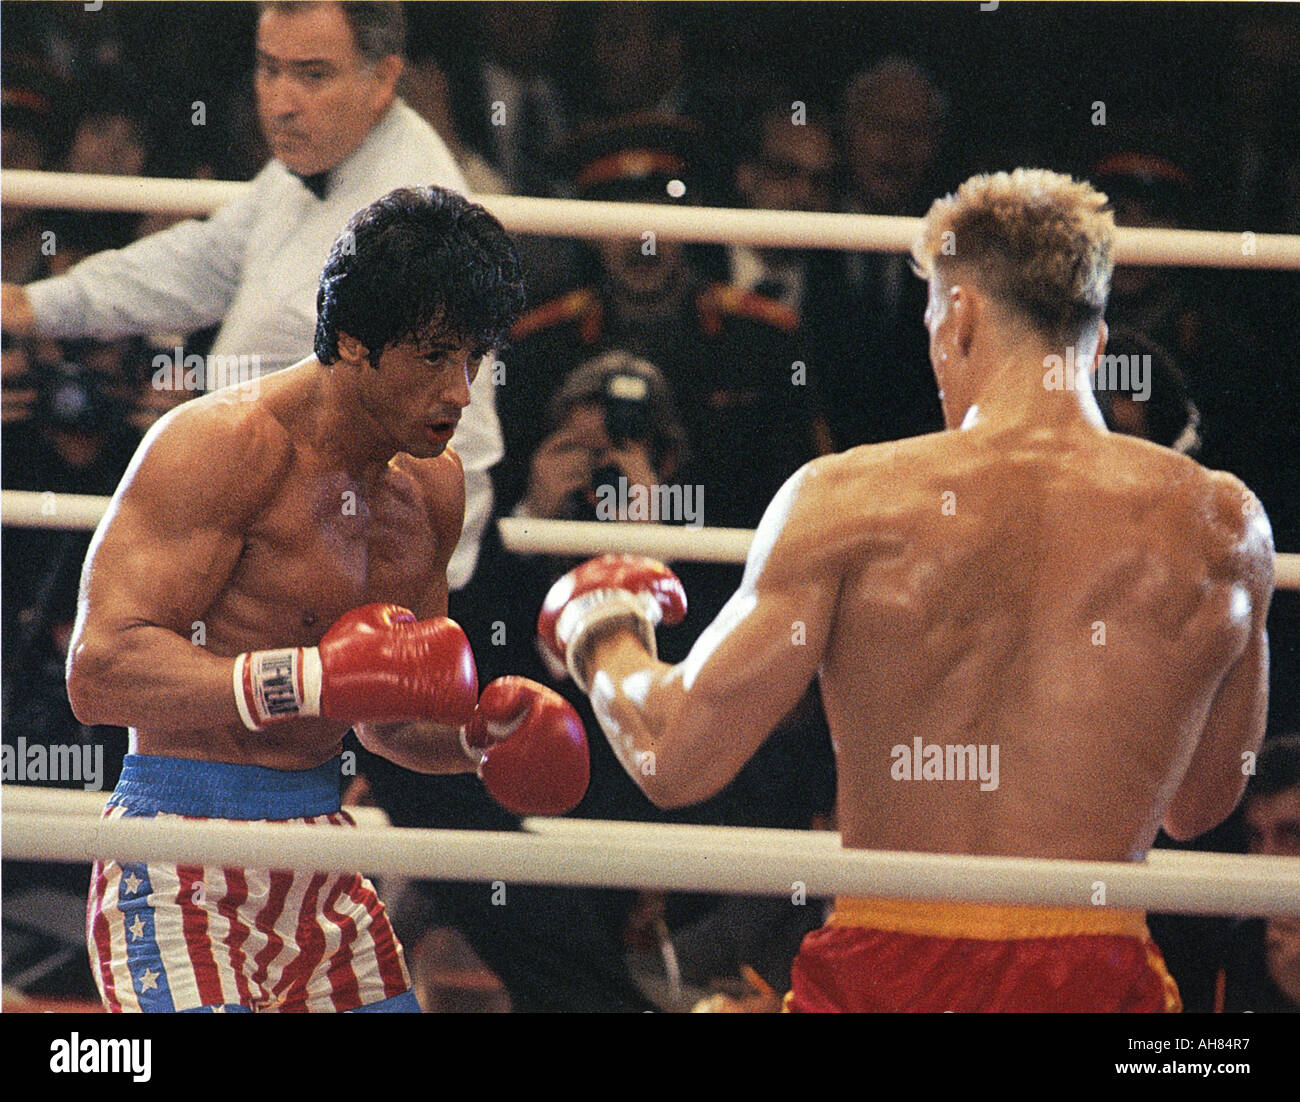 ROCKY IV 1985 MGM UA film with Sylvester Stallone and Dolph Lundgren Stock Photo